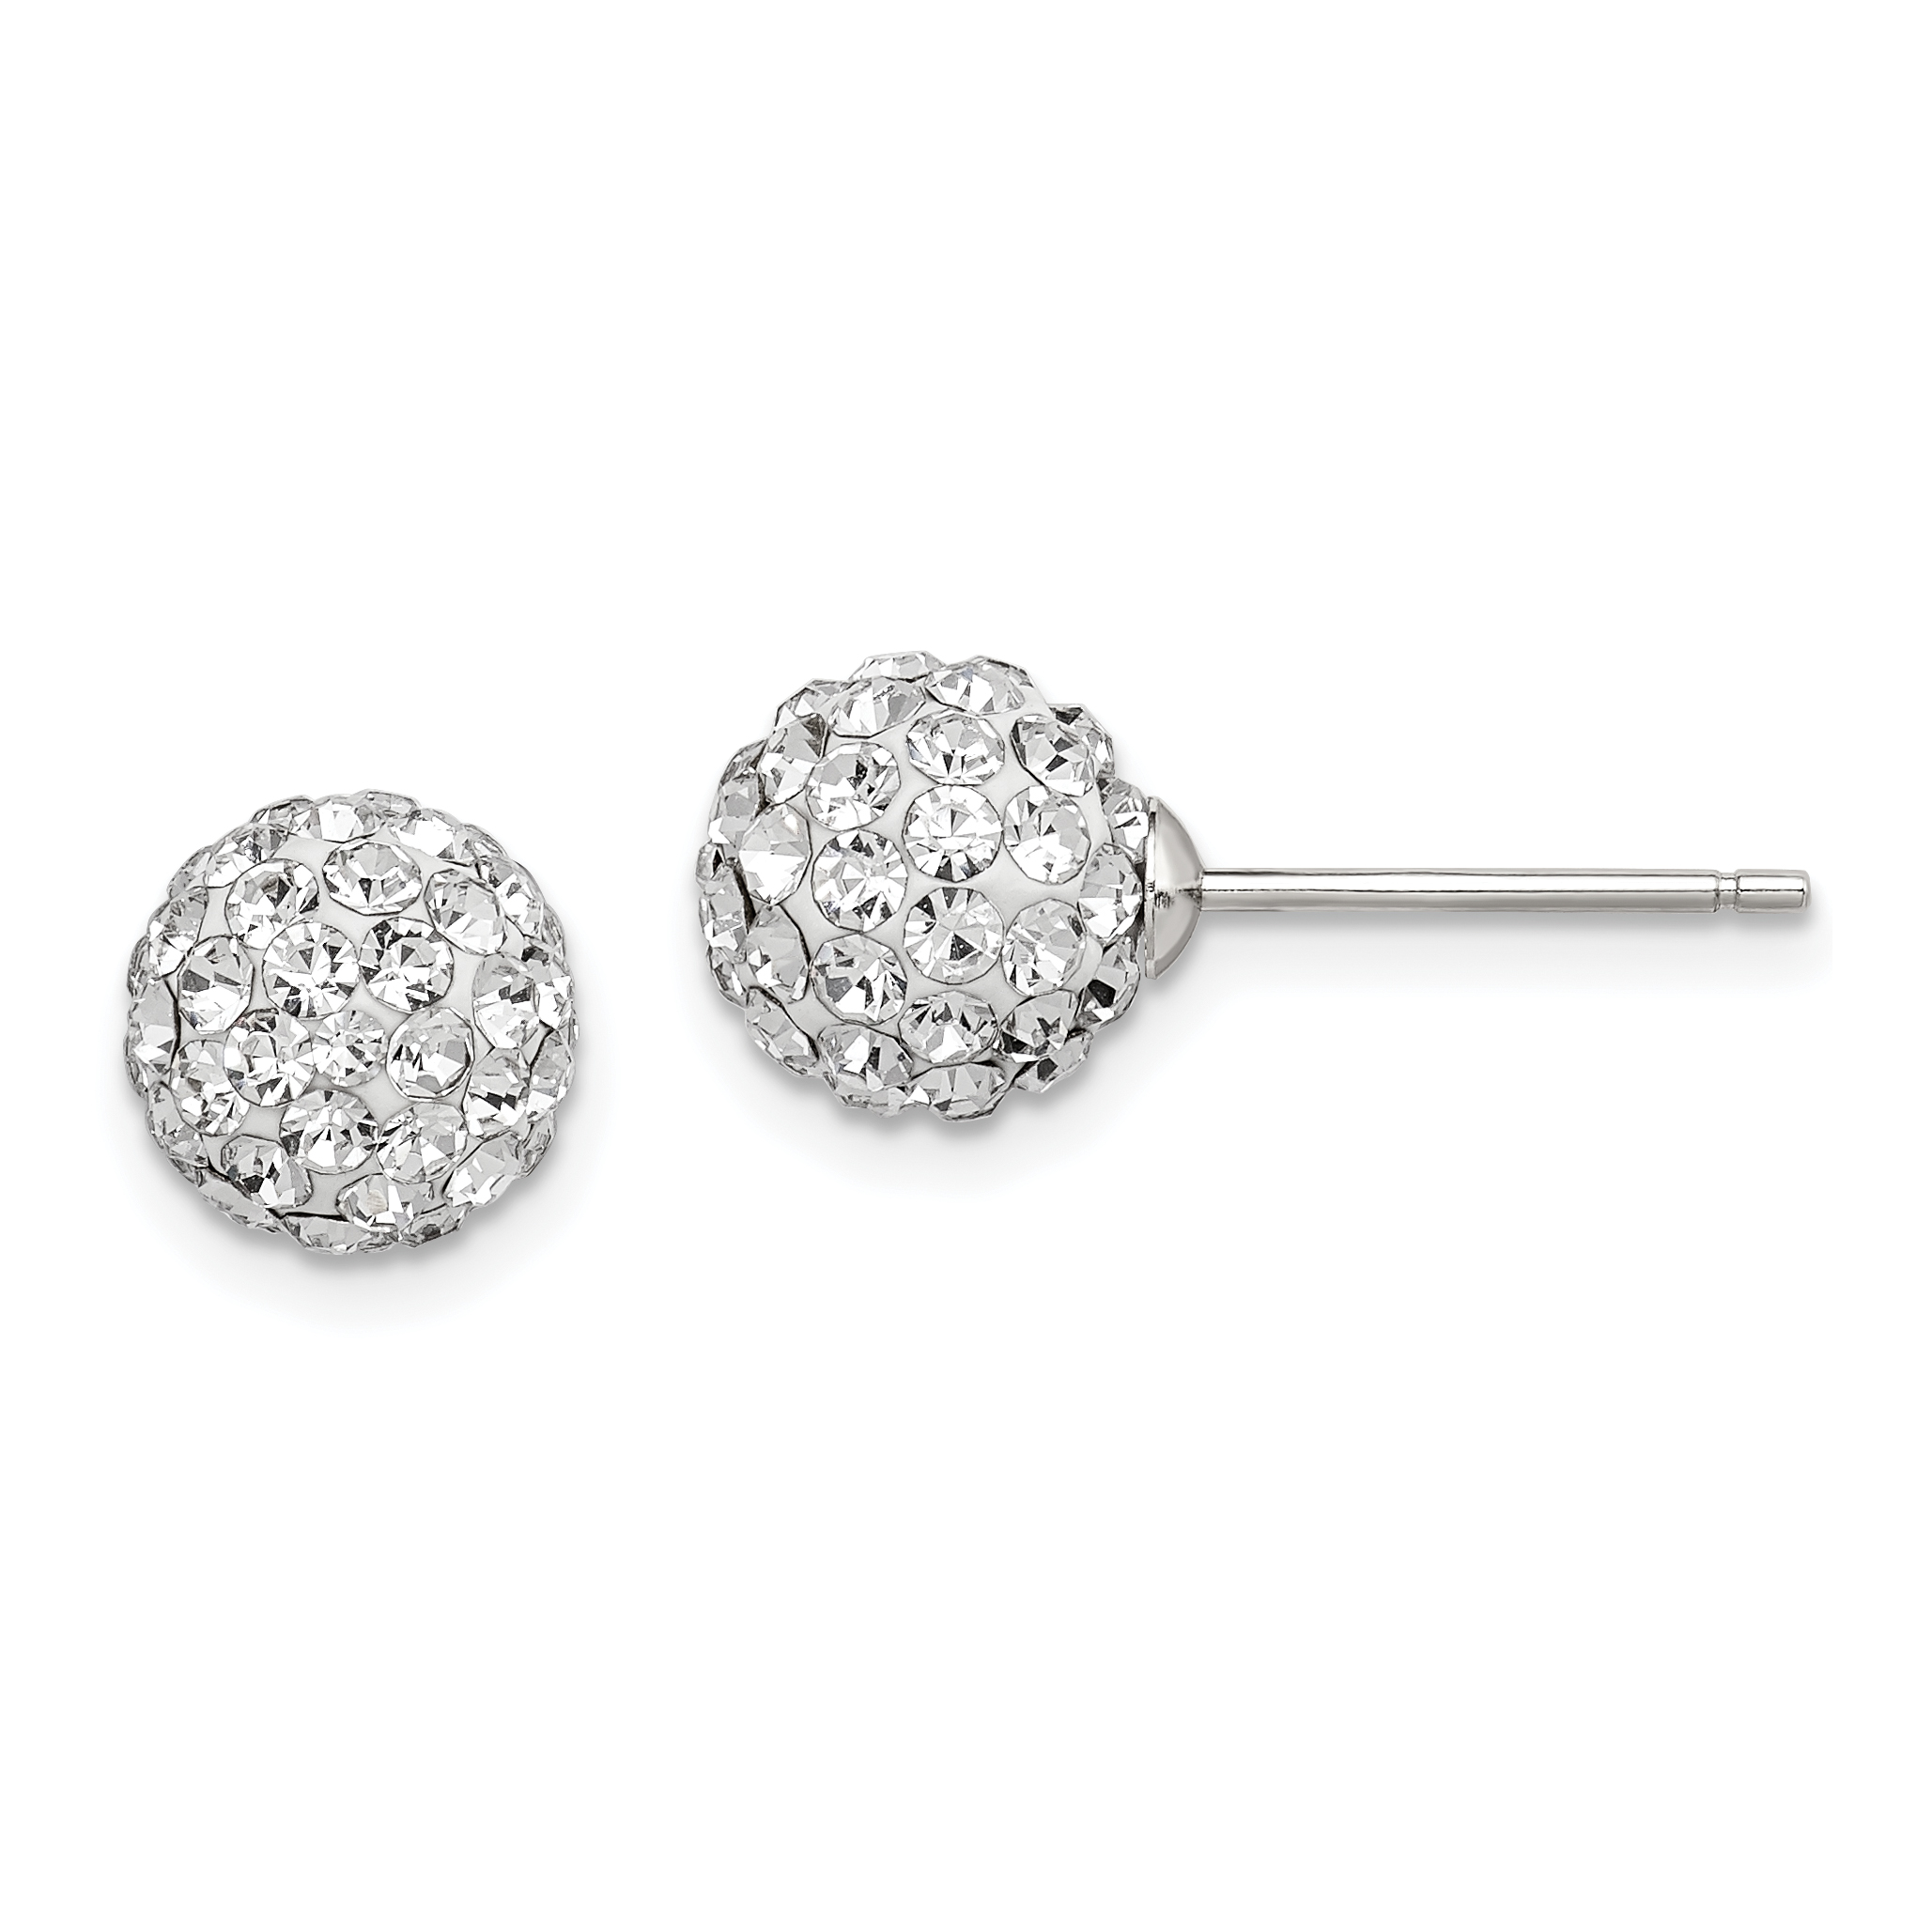 925 Sterling Silver 8mm White Czech Crystal Post Stud Earrings Ball Button Fine Jewelry Gifts For Women For Her - image 6 de 6